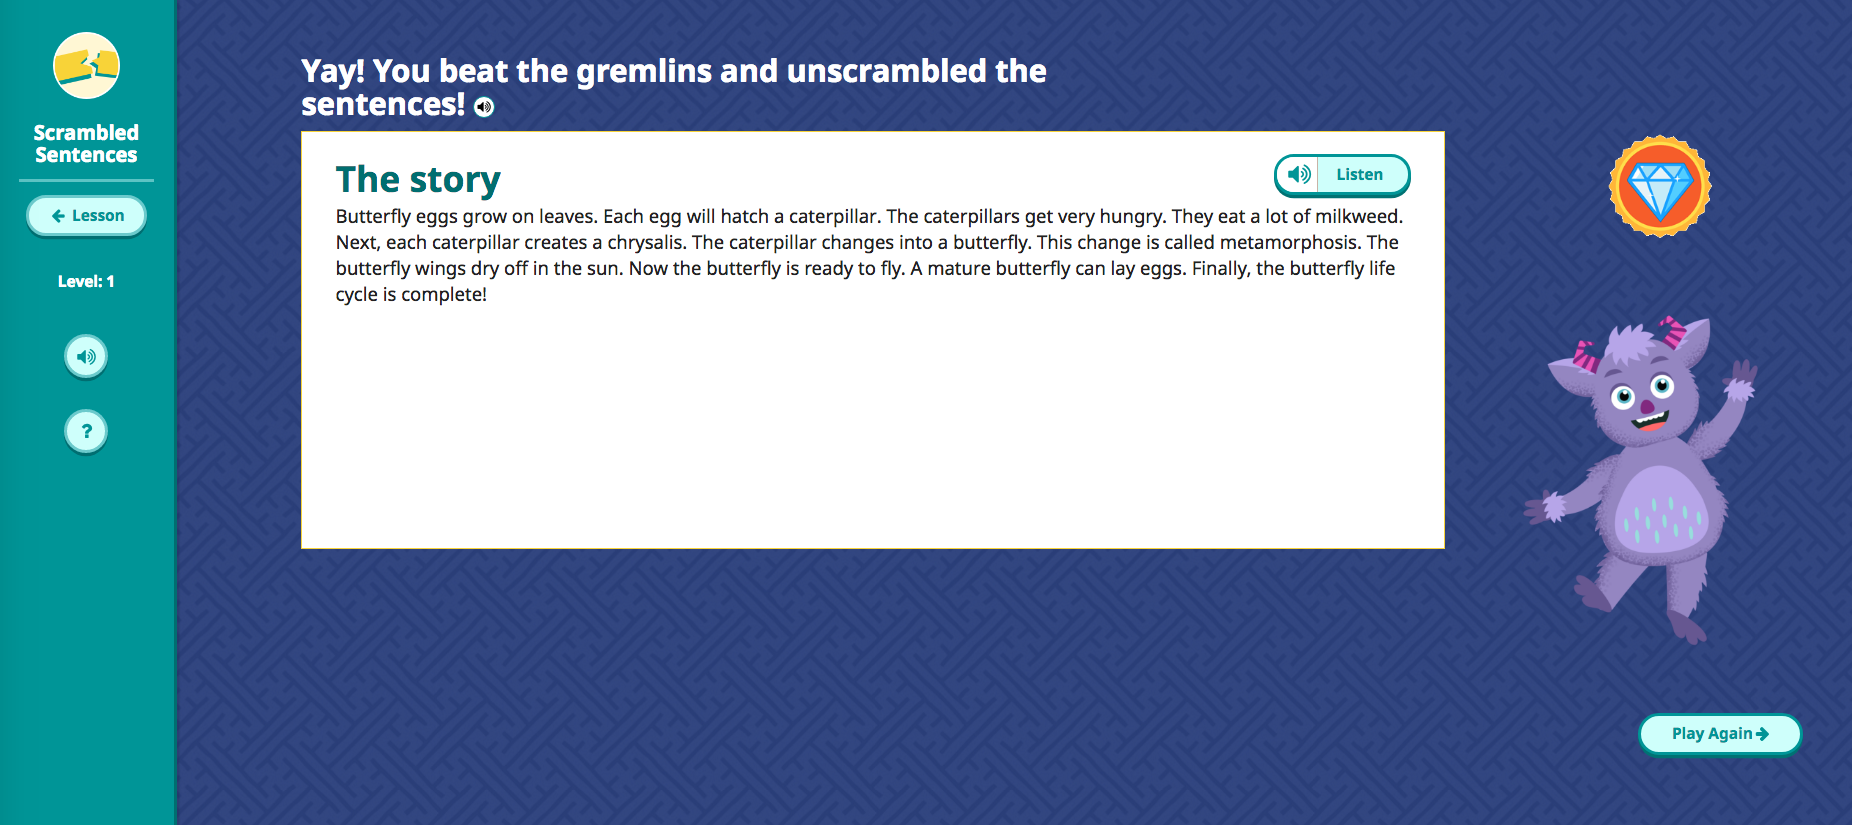 Scrambled Sentences puzzle game story